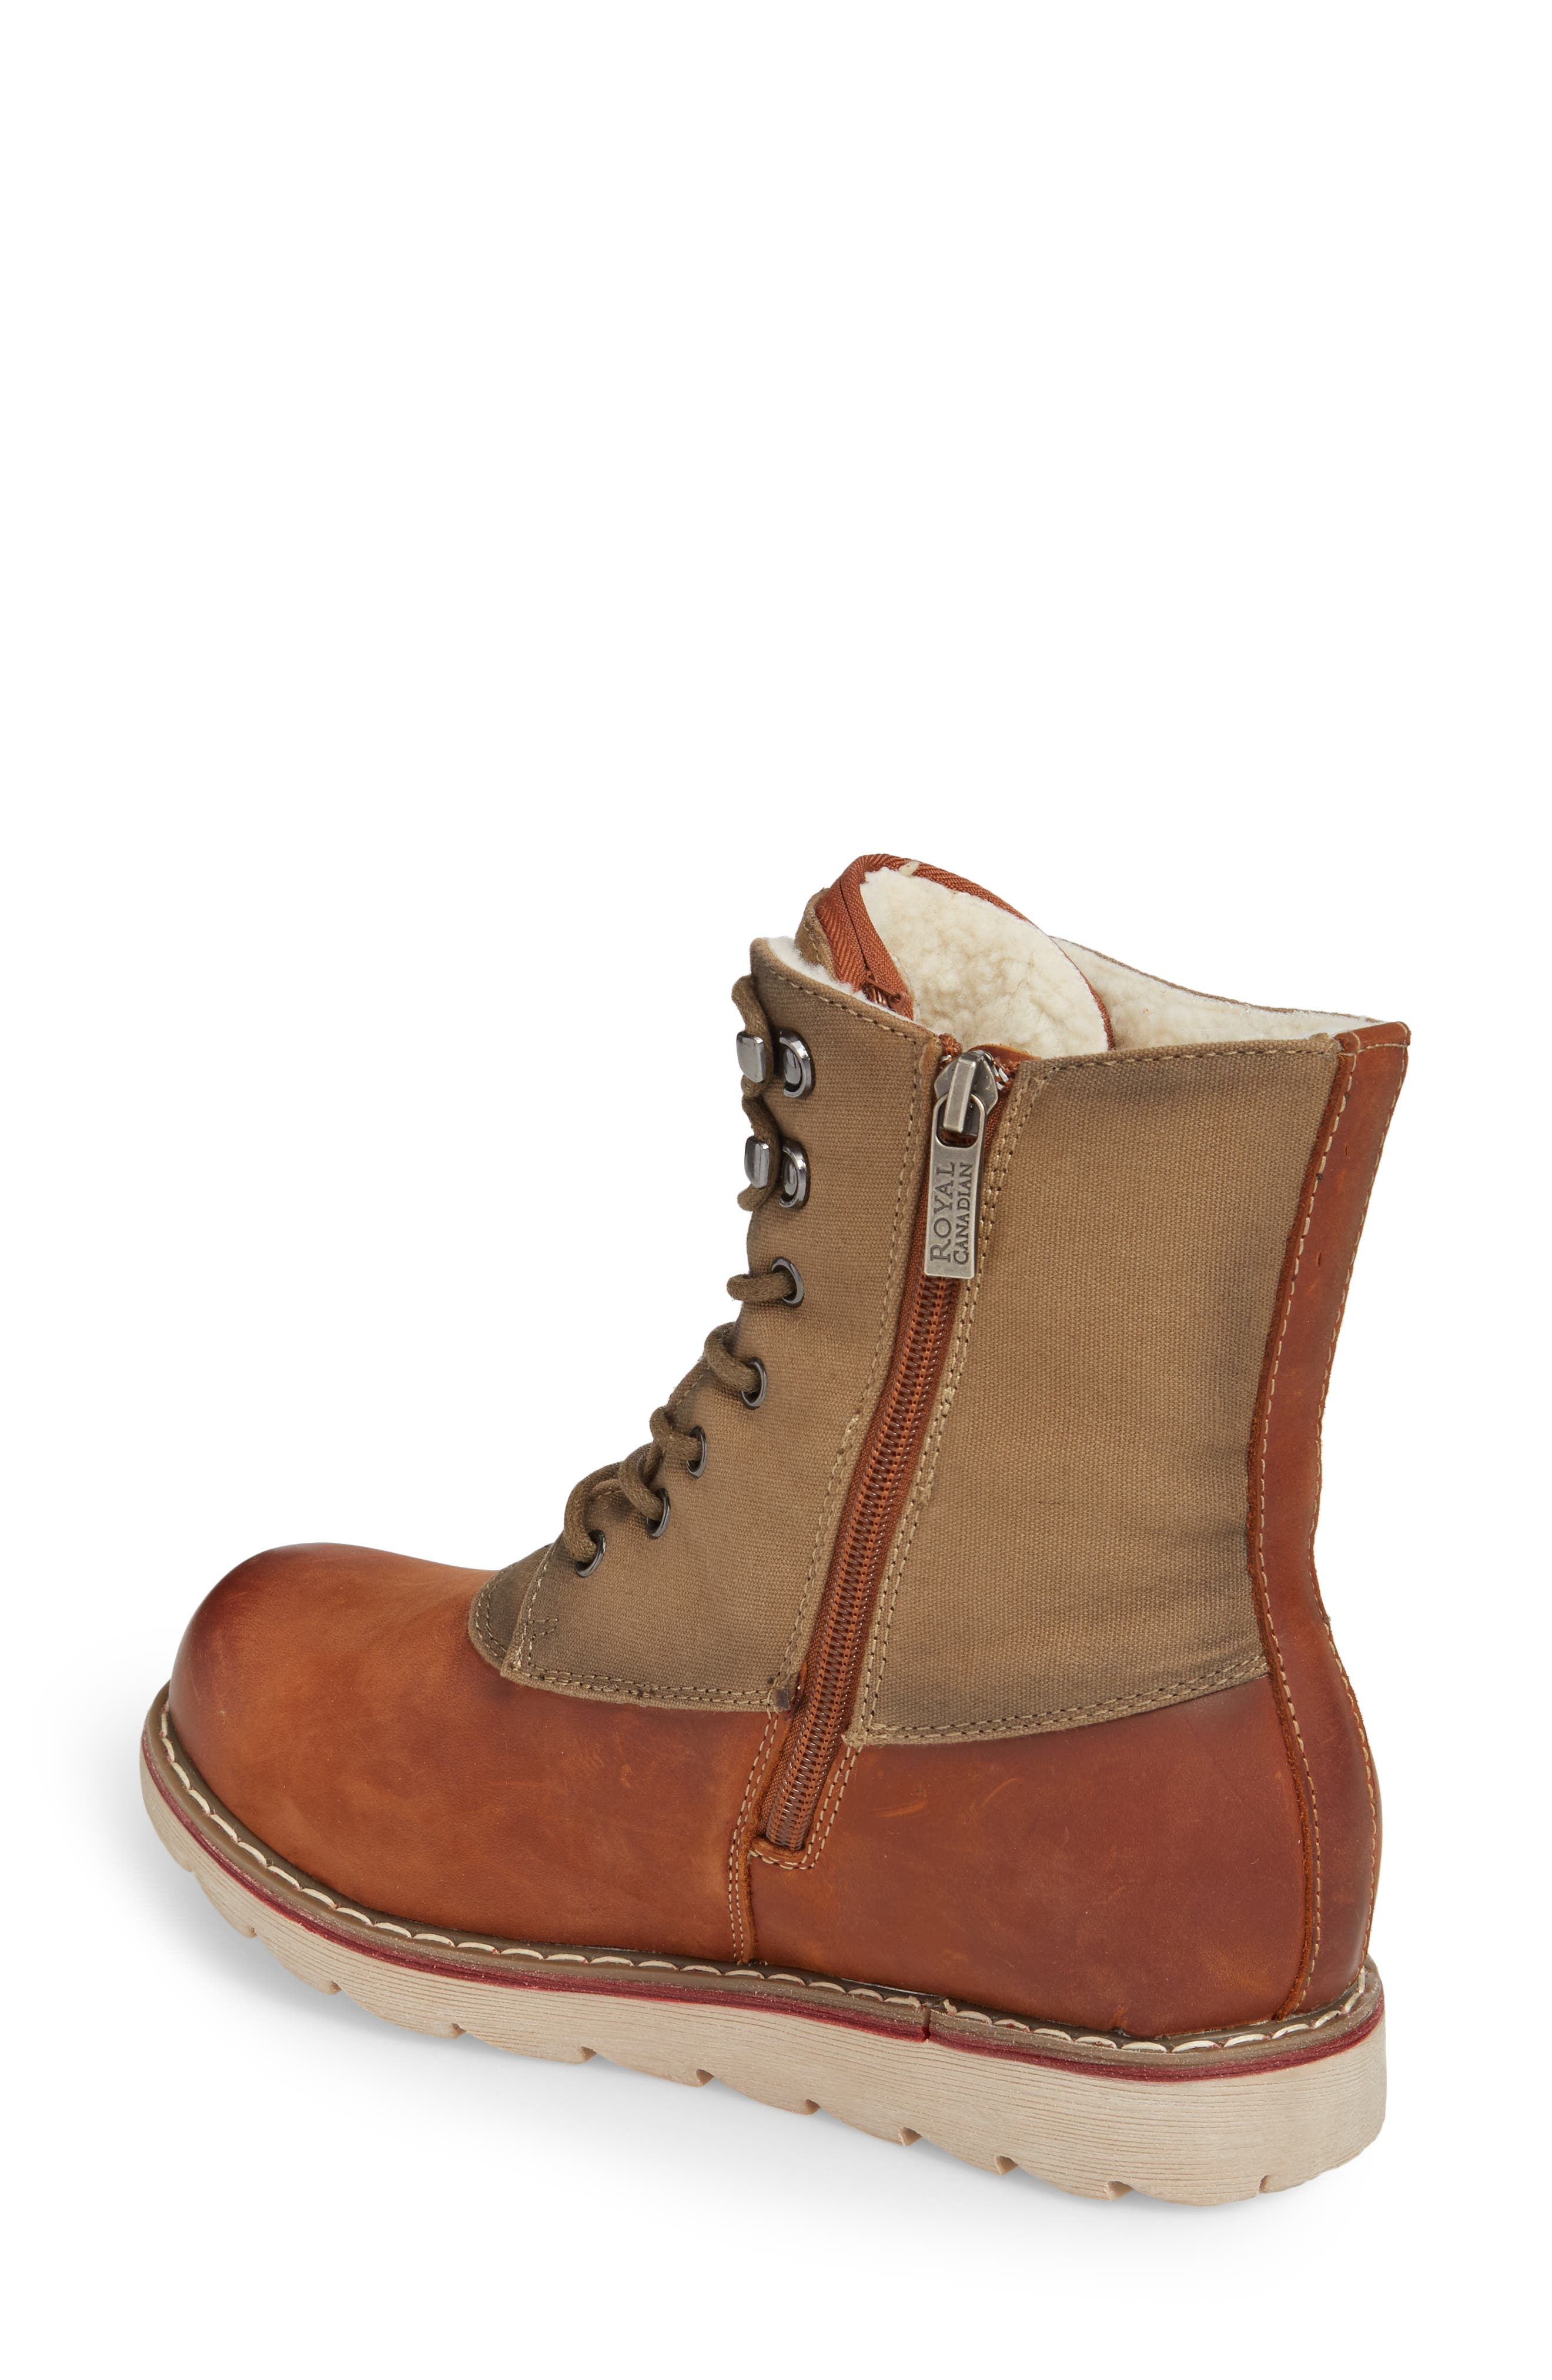 LaSalle Waterproof Insulated Winter Boot,                             Alternate thumbnail 2, color,                             Cognac Leather